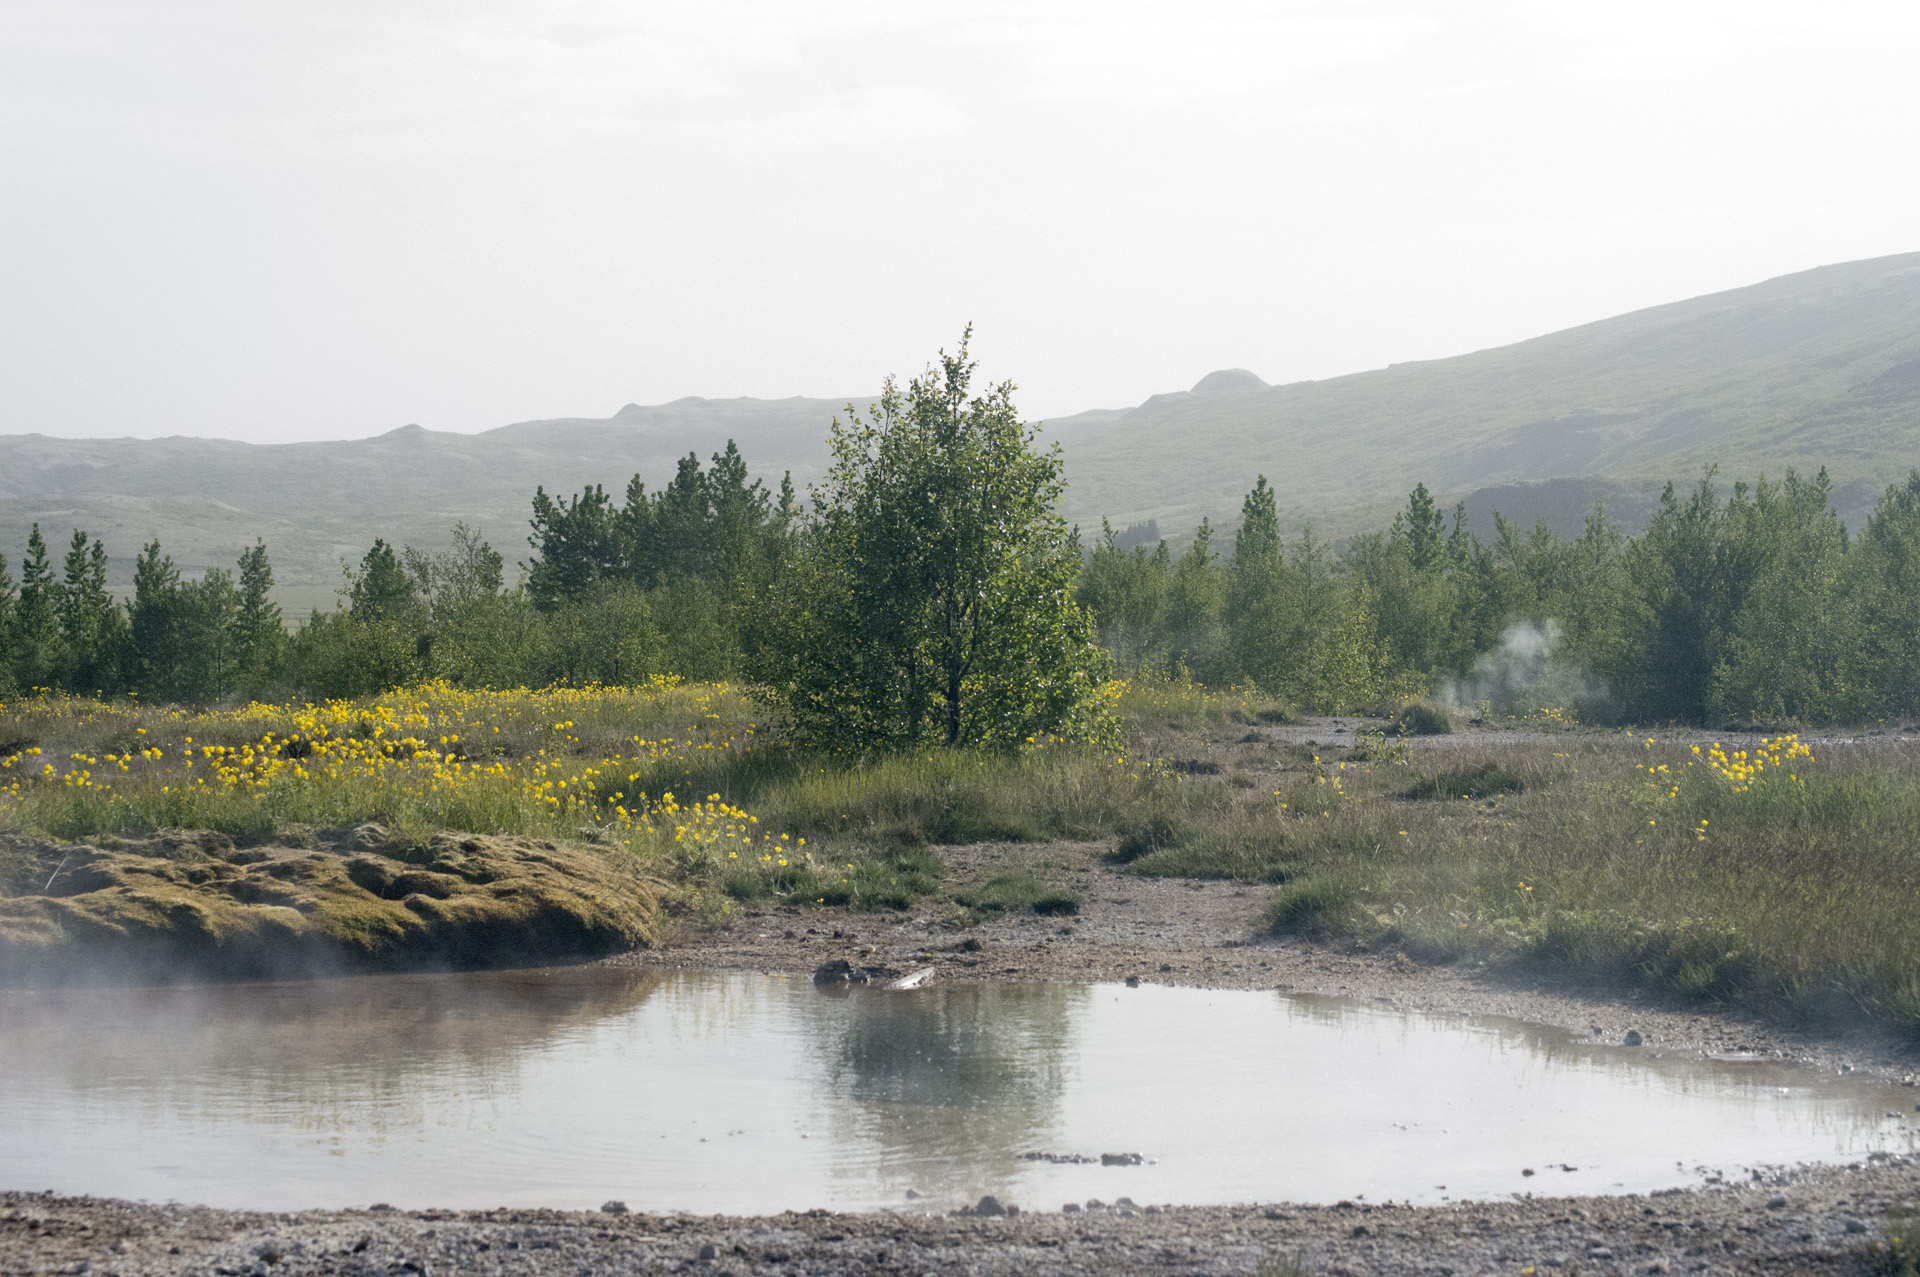 Geothermal pool in the Geysir Hot Spring Area in the Haukadalur Valley, Iceland.